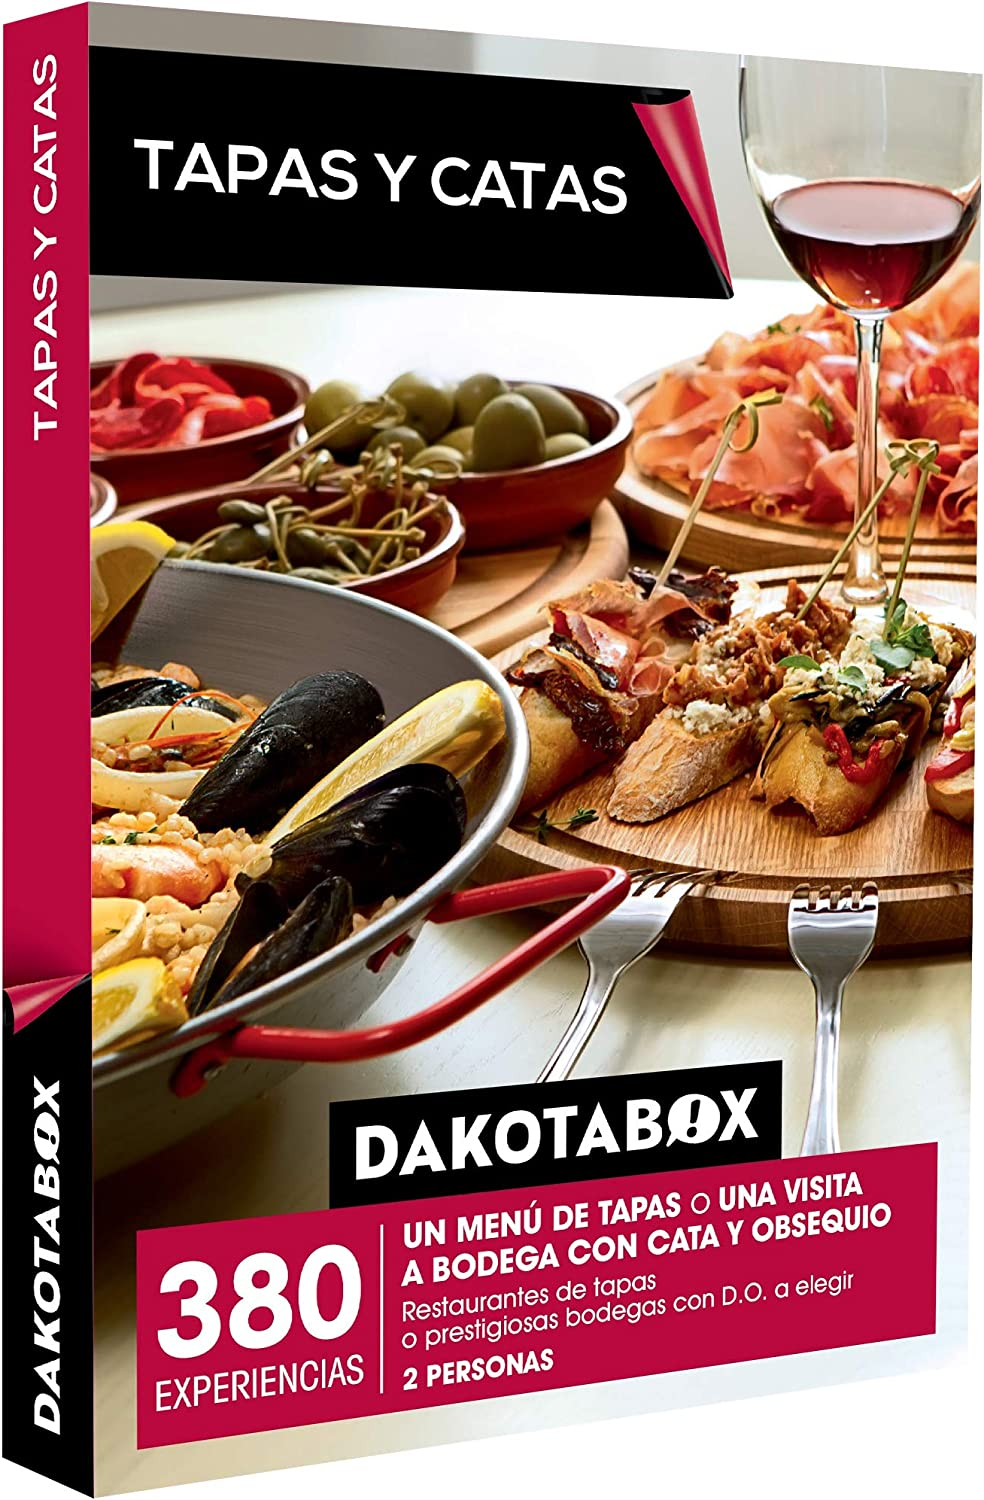 tapas y catas dakotabox